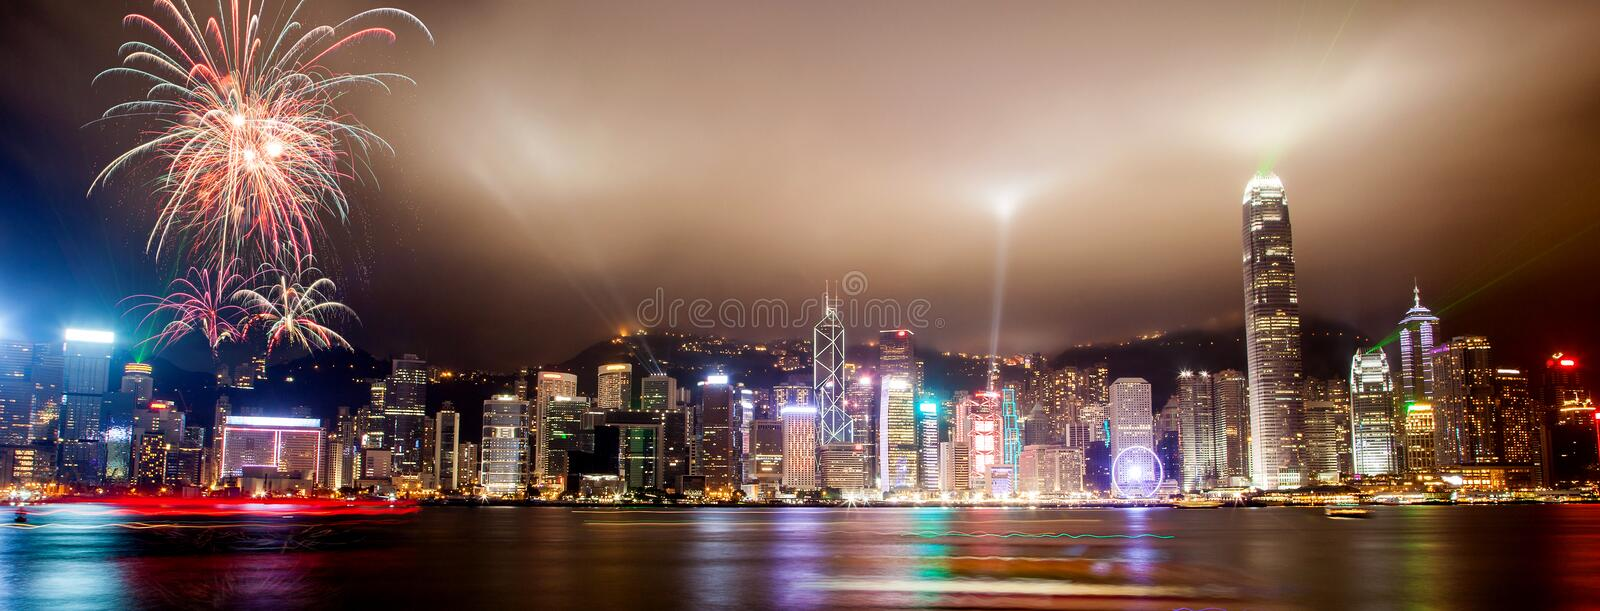 Light Show Over Hong Kong Skyline at Victoria Harbor. Panorama view of Hong Kong skyline with lasers, floodlights and fireworks illuminating the night skies on stock photography